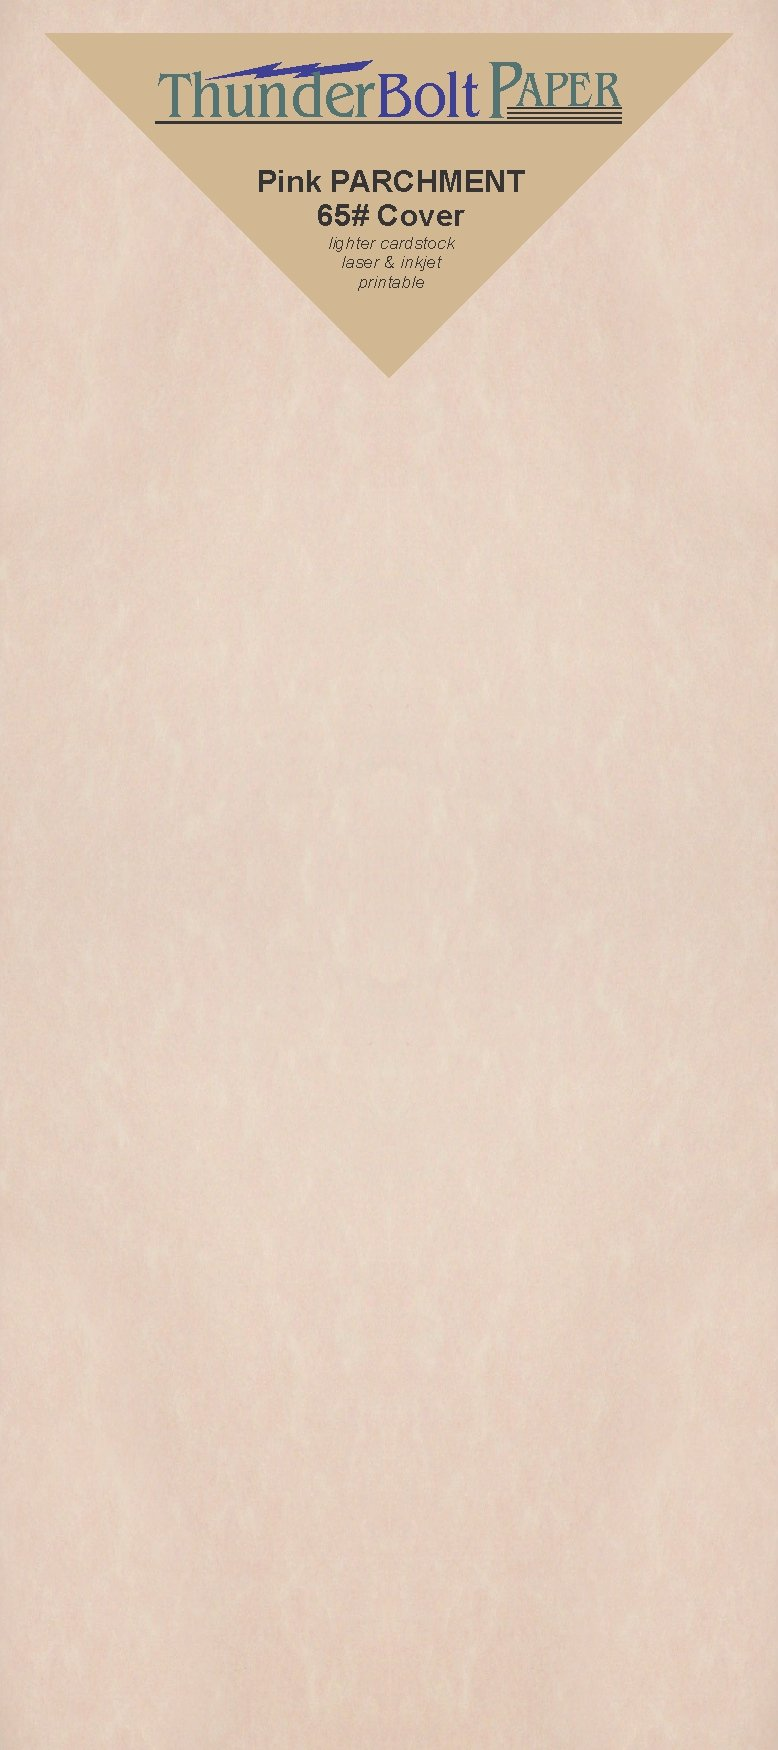 125 Pink Parchment 65lb Cover Weight Paper - 4'' X 9'' (4X9 inches) #10 Envelope Insert Size - Printable Cardstock Colored Sheets Old Parchment Semblance by ThunderBolt Paper